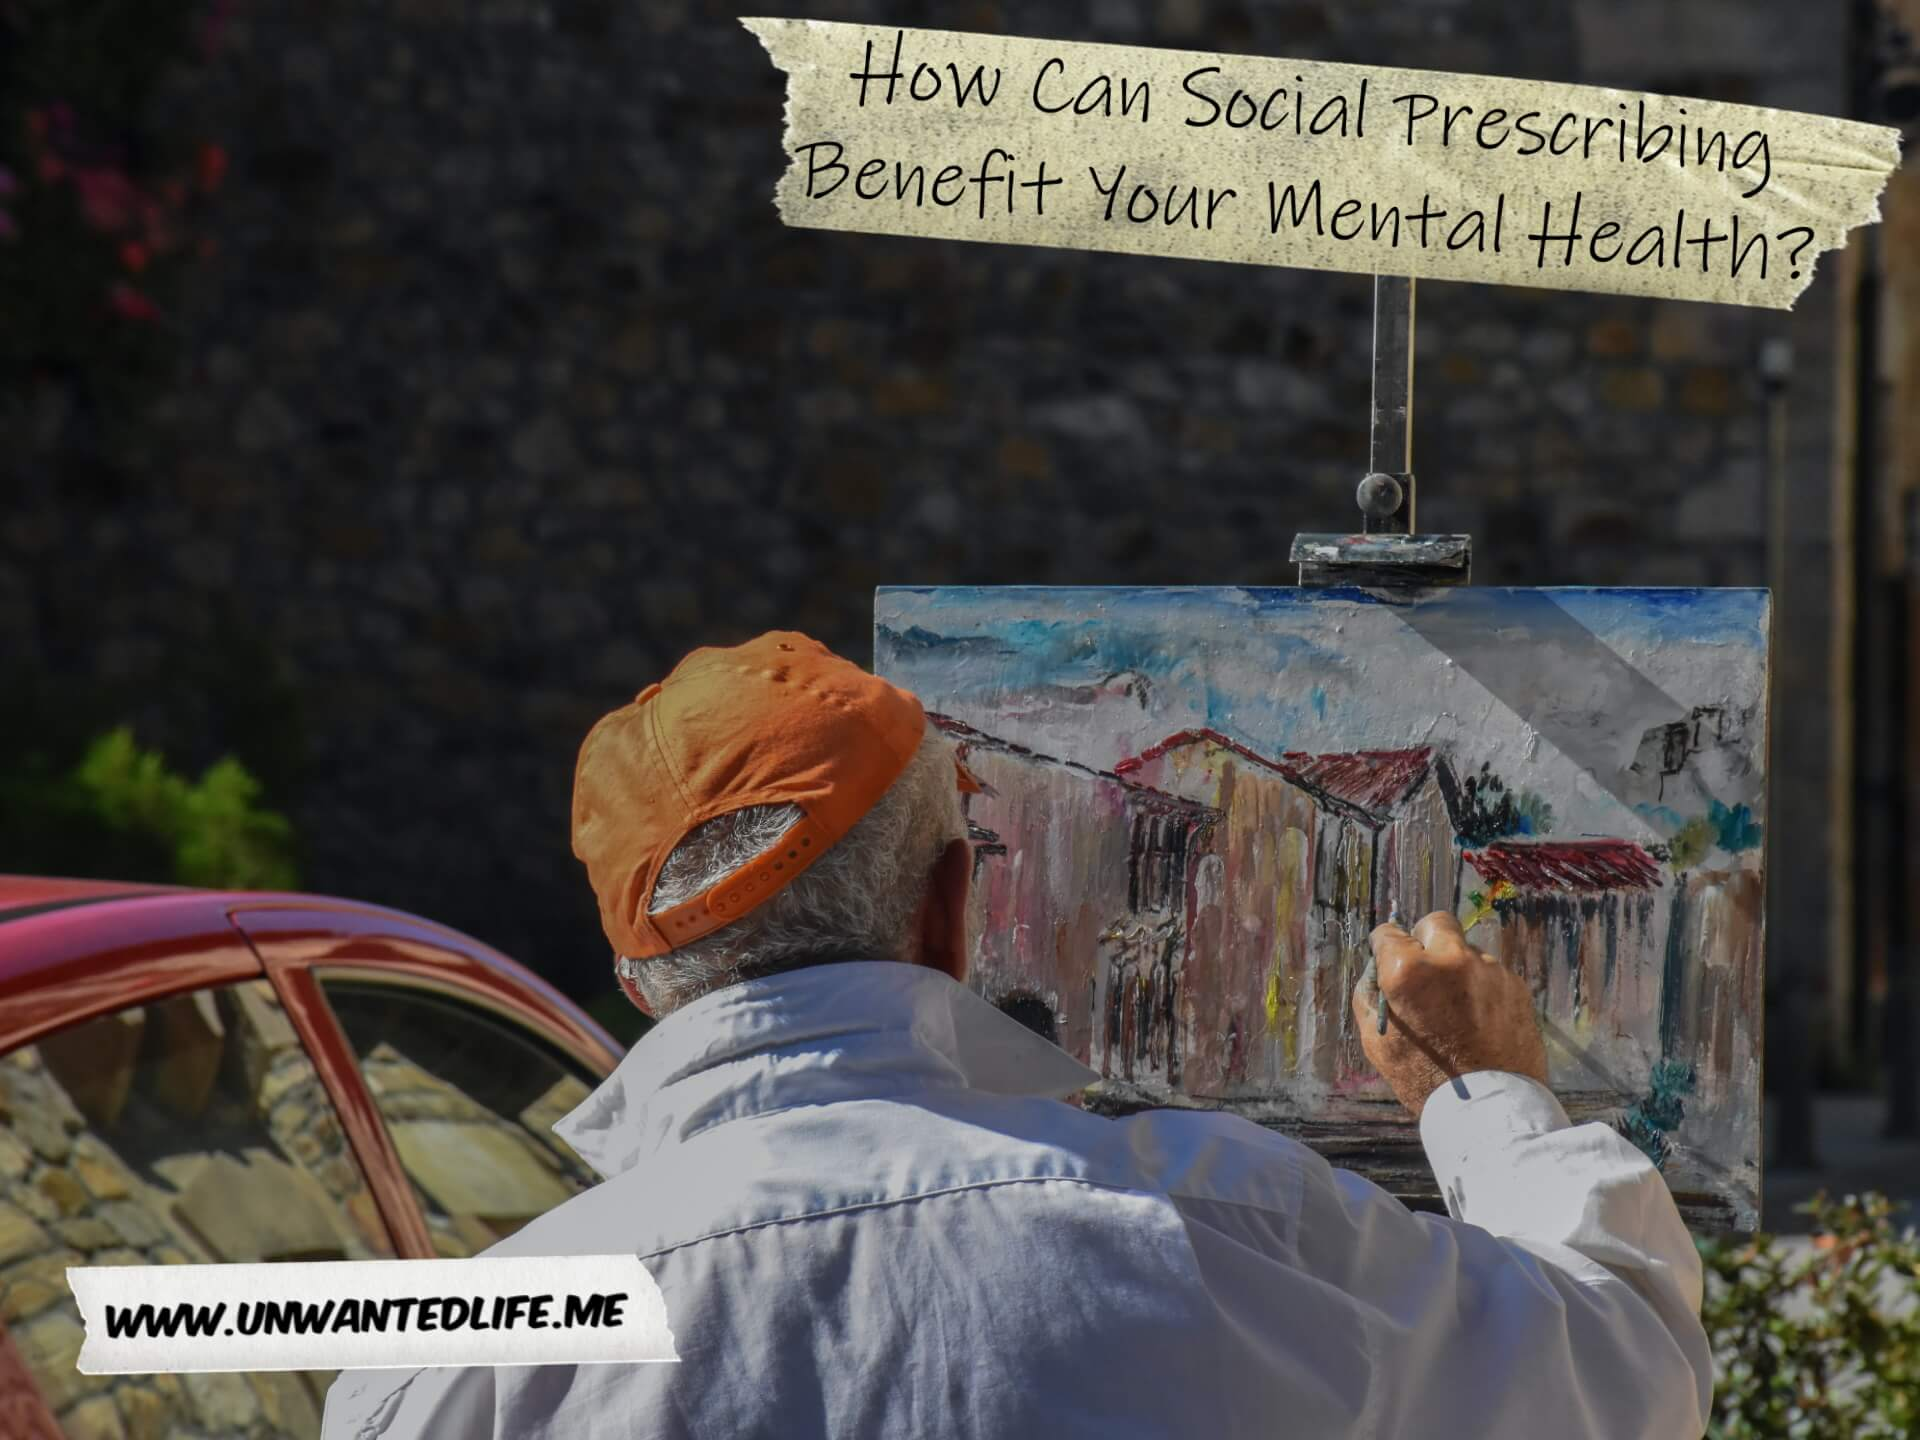 A photo of an elderly man painting landscape of a series of buildings to represent the topic of the article - How Can Social Prescribing Benefit Your Mental Health?